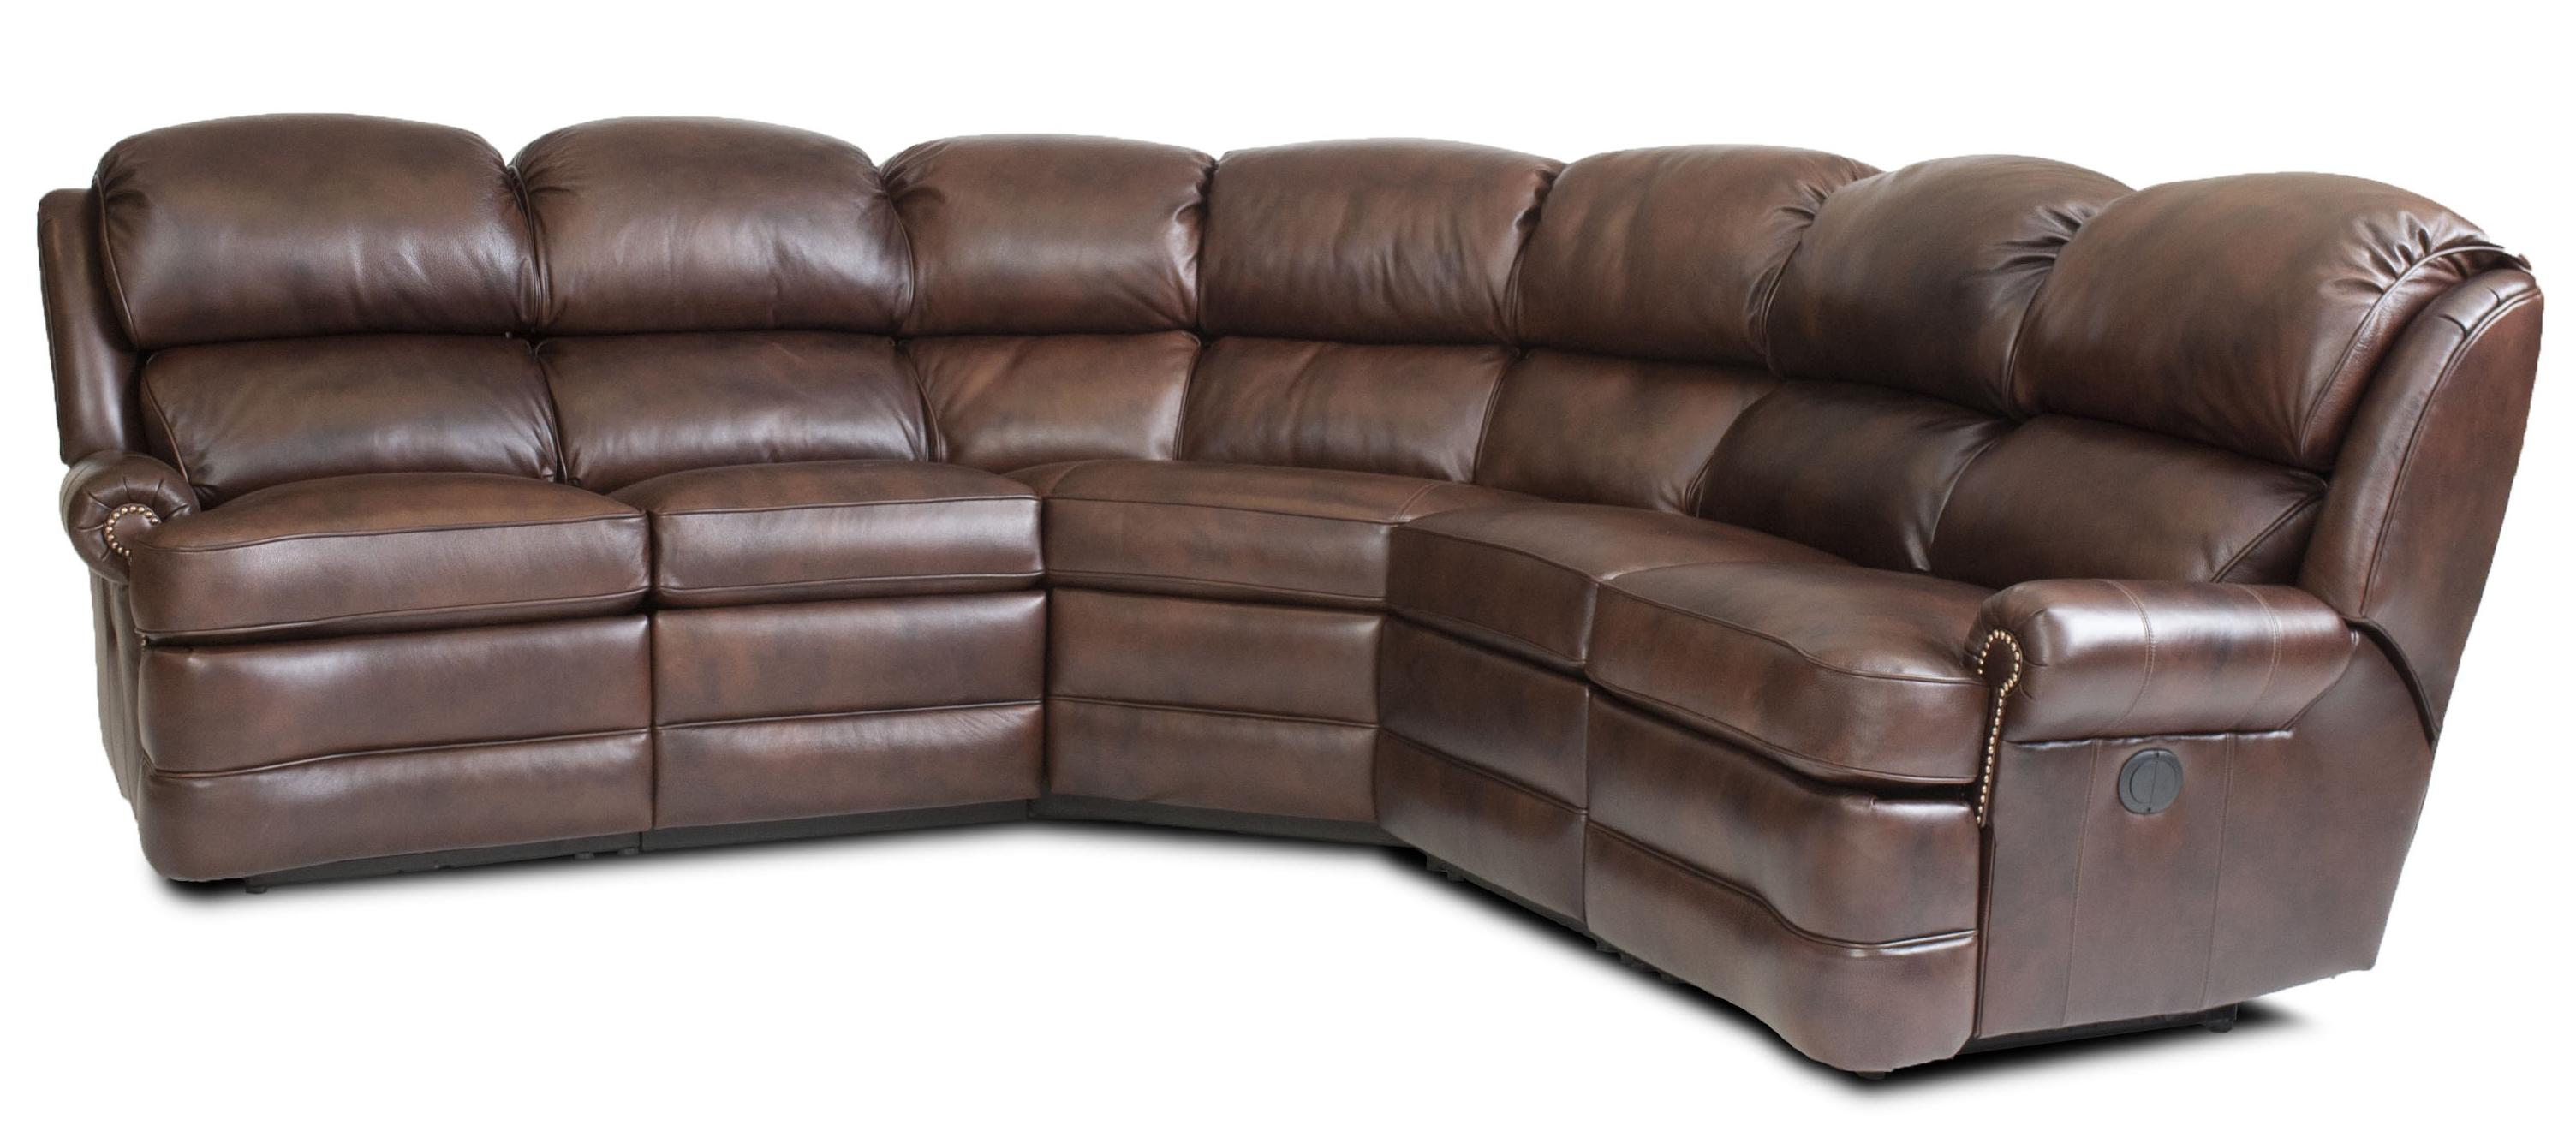 Smith Brothers Transitional 5 Piece Reclining Sectional Sofa With Small Rolled Arms By Smith